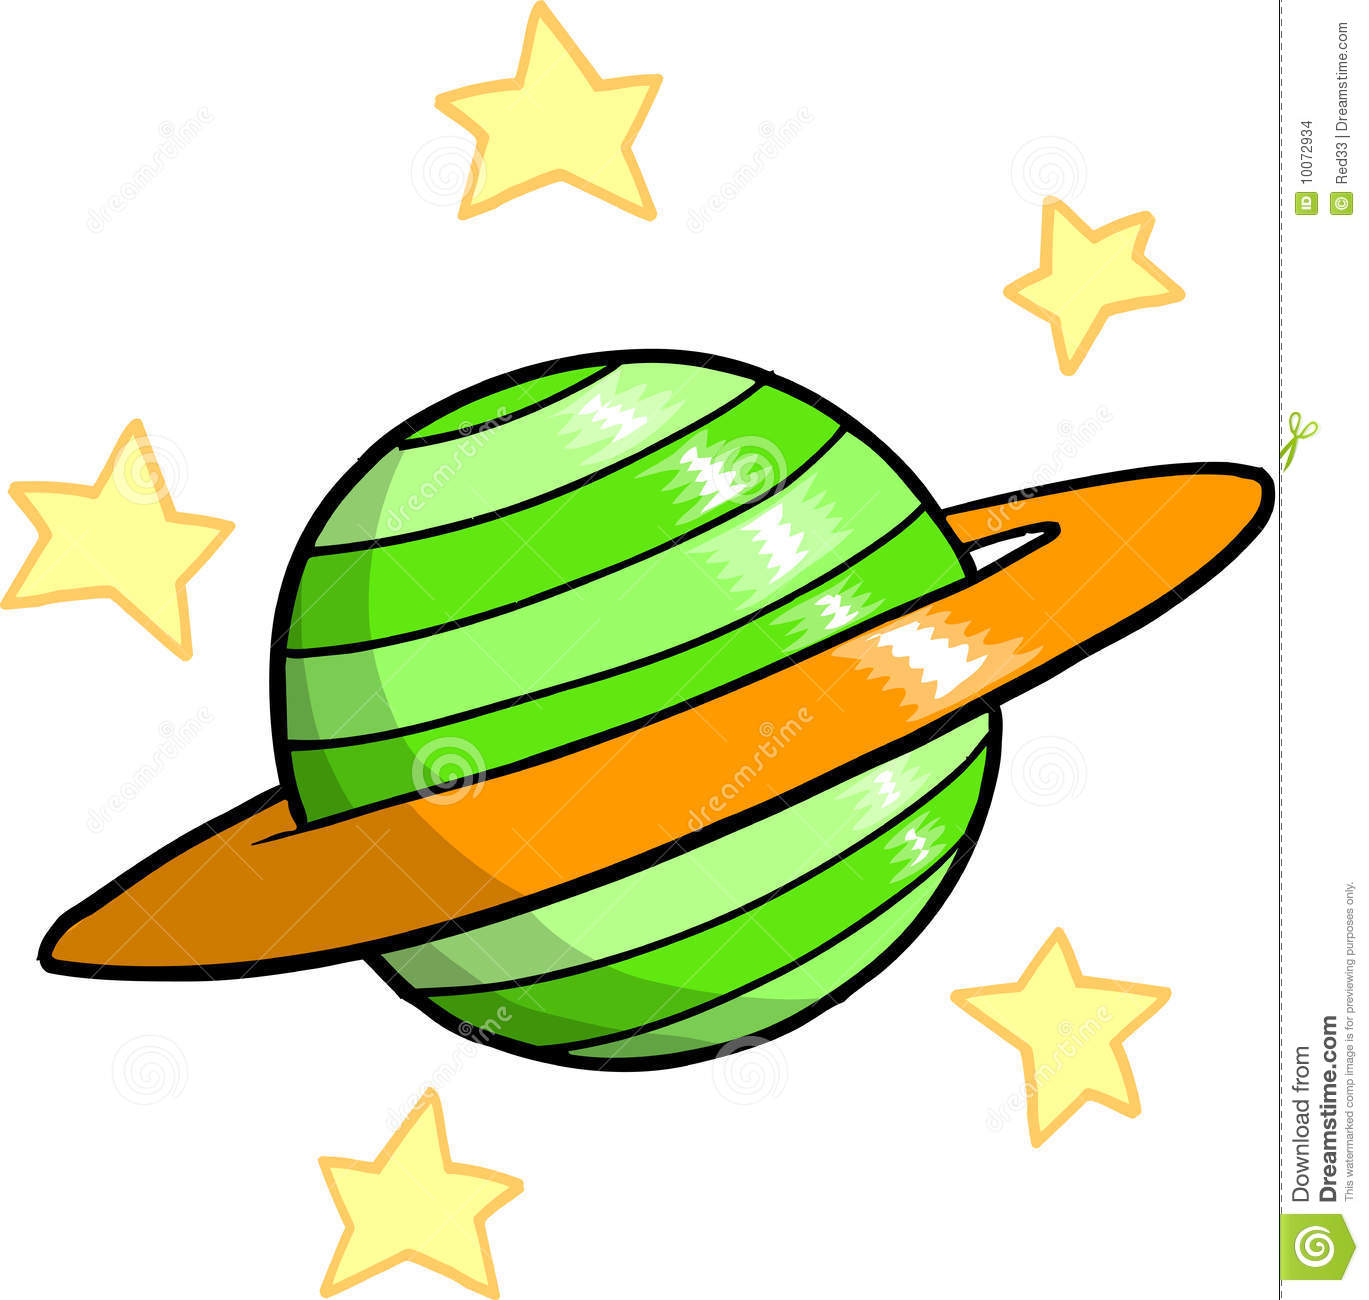 Planets clipart star. Cliparts free download best